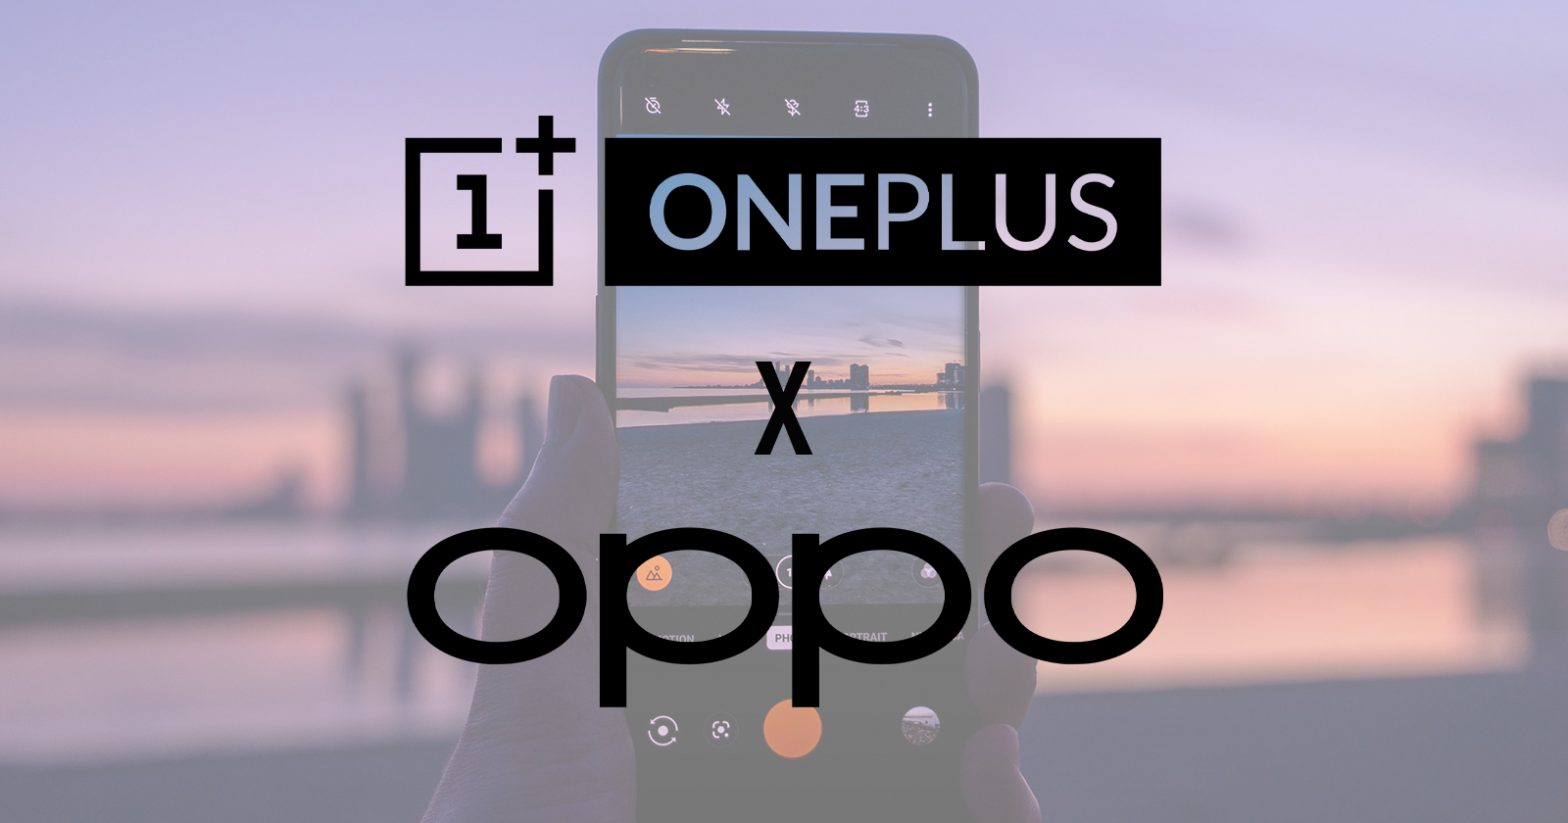 Smartphone Brands OnePlus and Oppo Further Strengthen Ties with a Merger